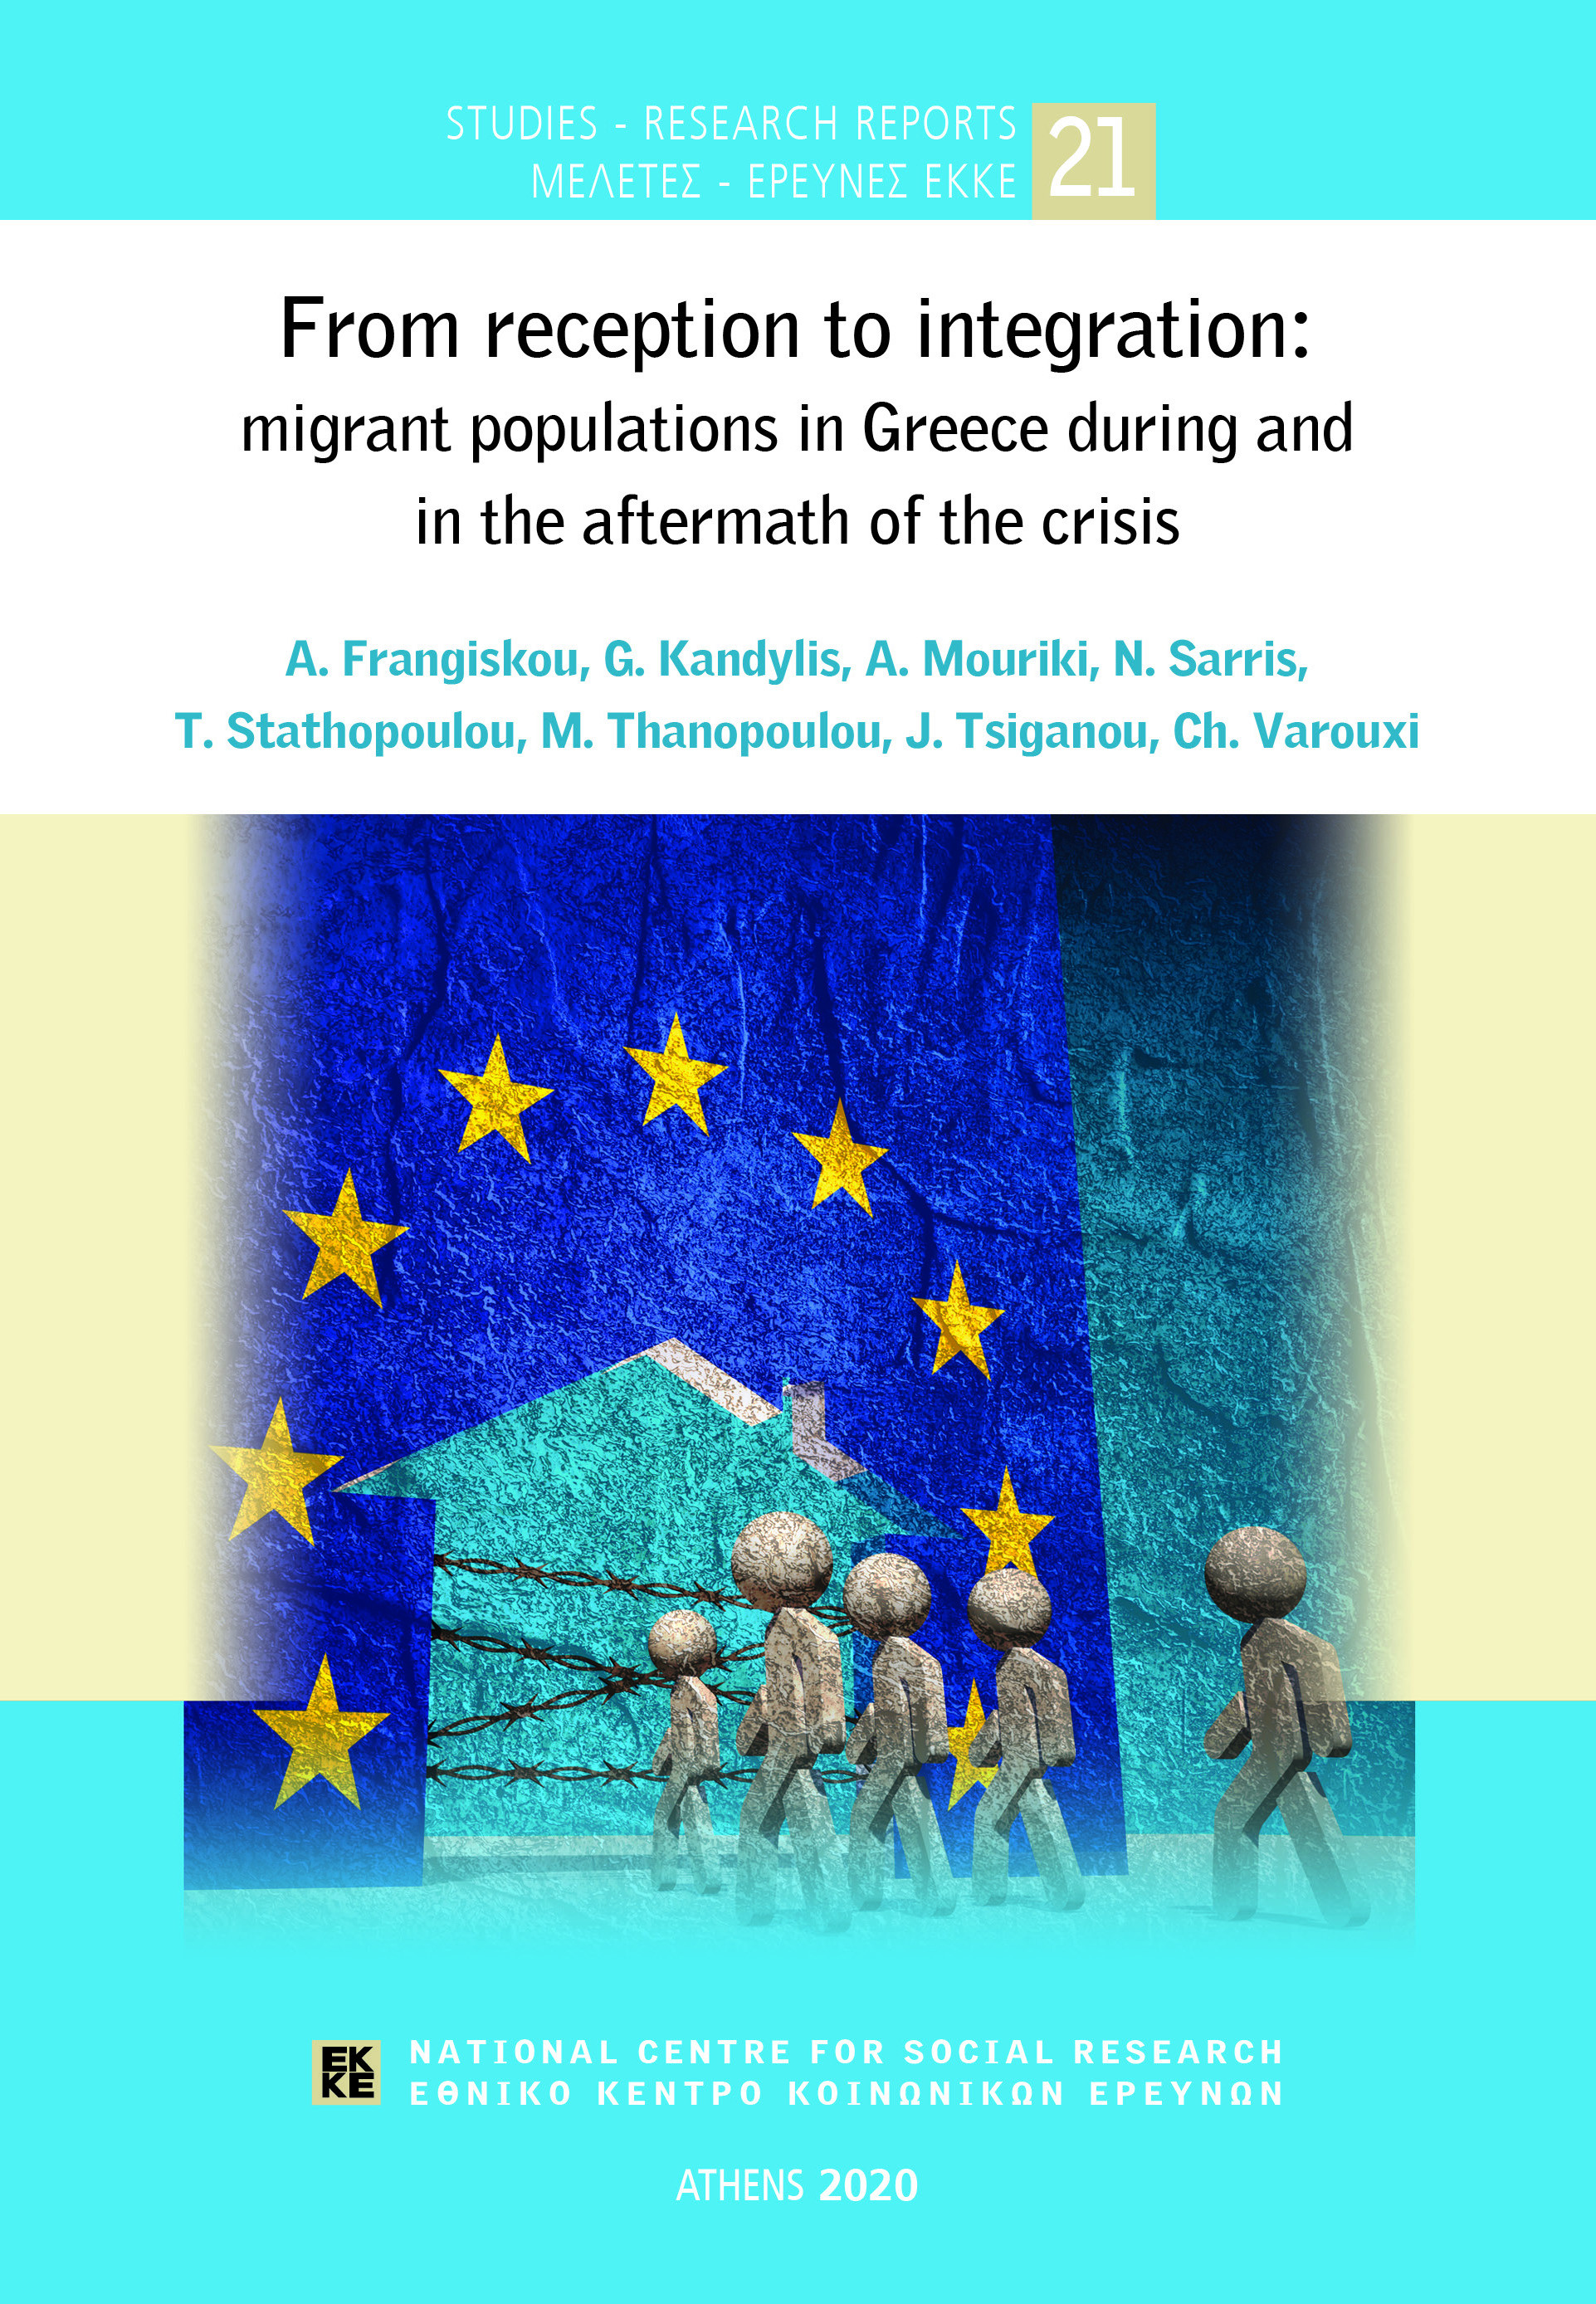 From reception to integration: migrant populations in Grece during and in the aftermath of the crisis cover